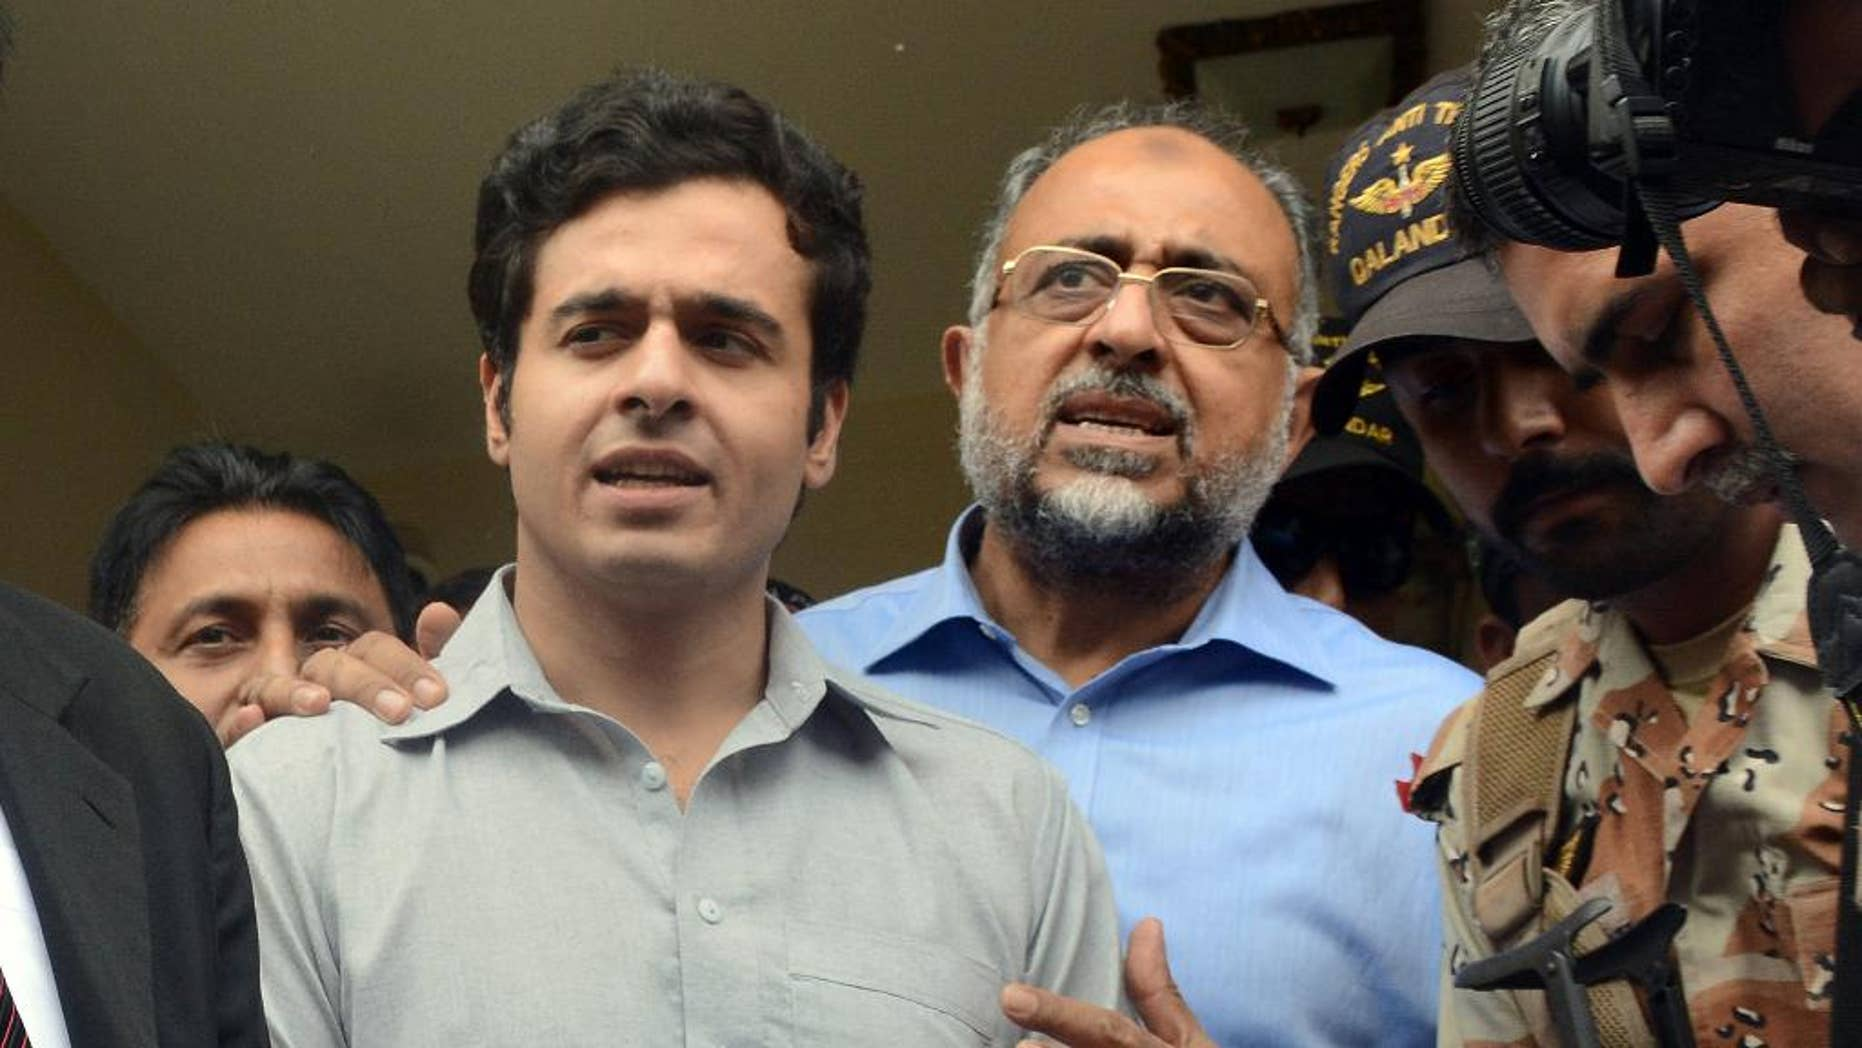 Awais Shah, center left, speaks to journalists with his father Sajjad Ali Shah, center right, chief justice of Sindh's High Court, after the son was rescued from kidnappers.